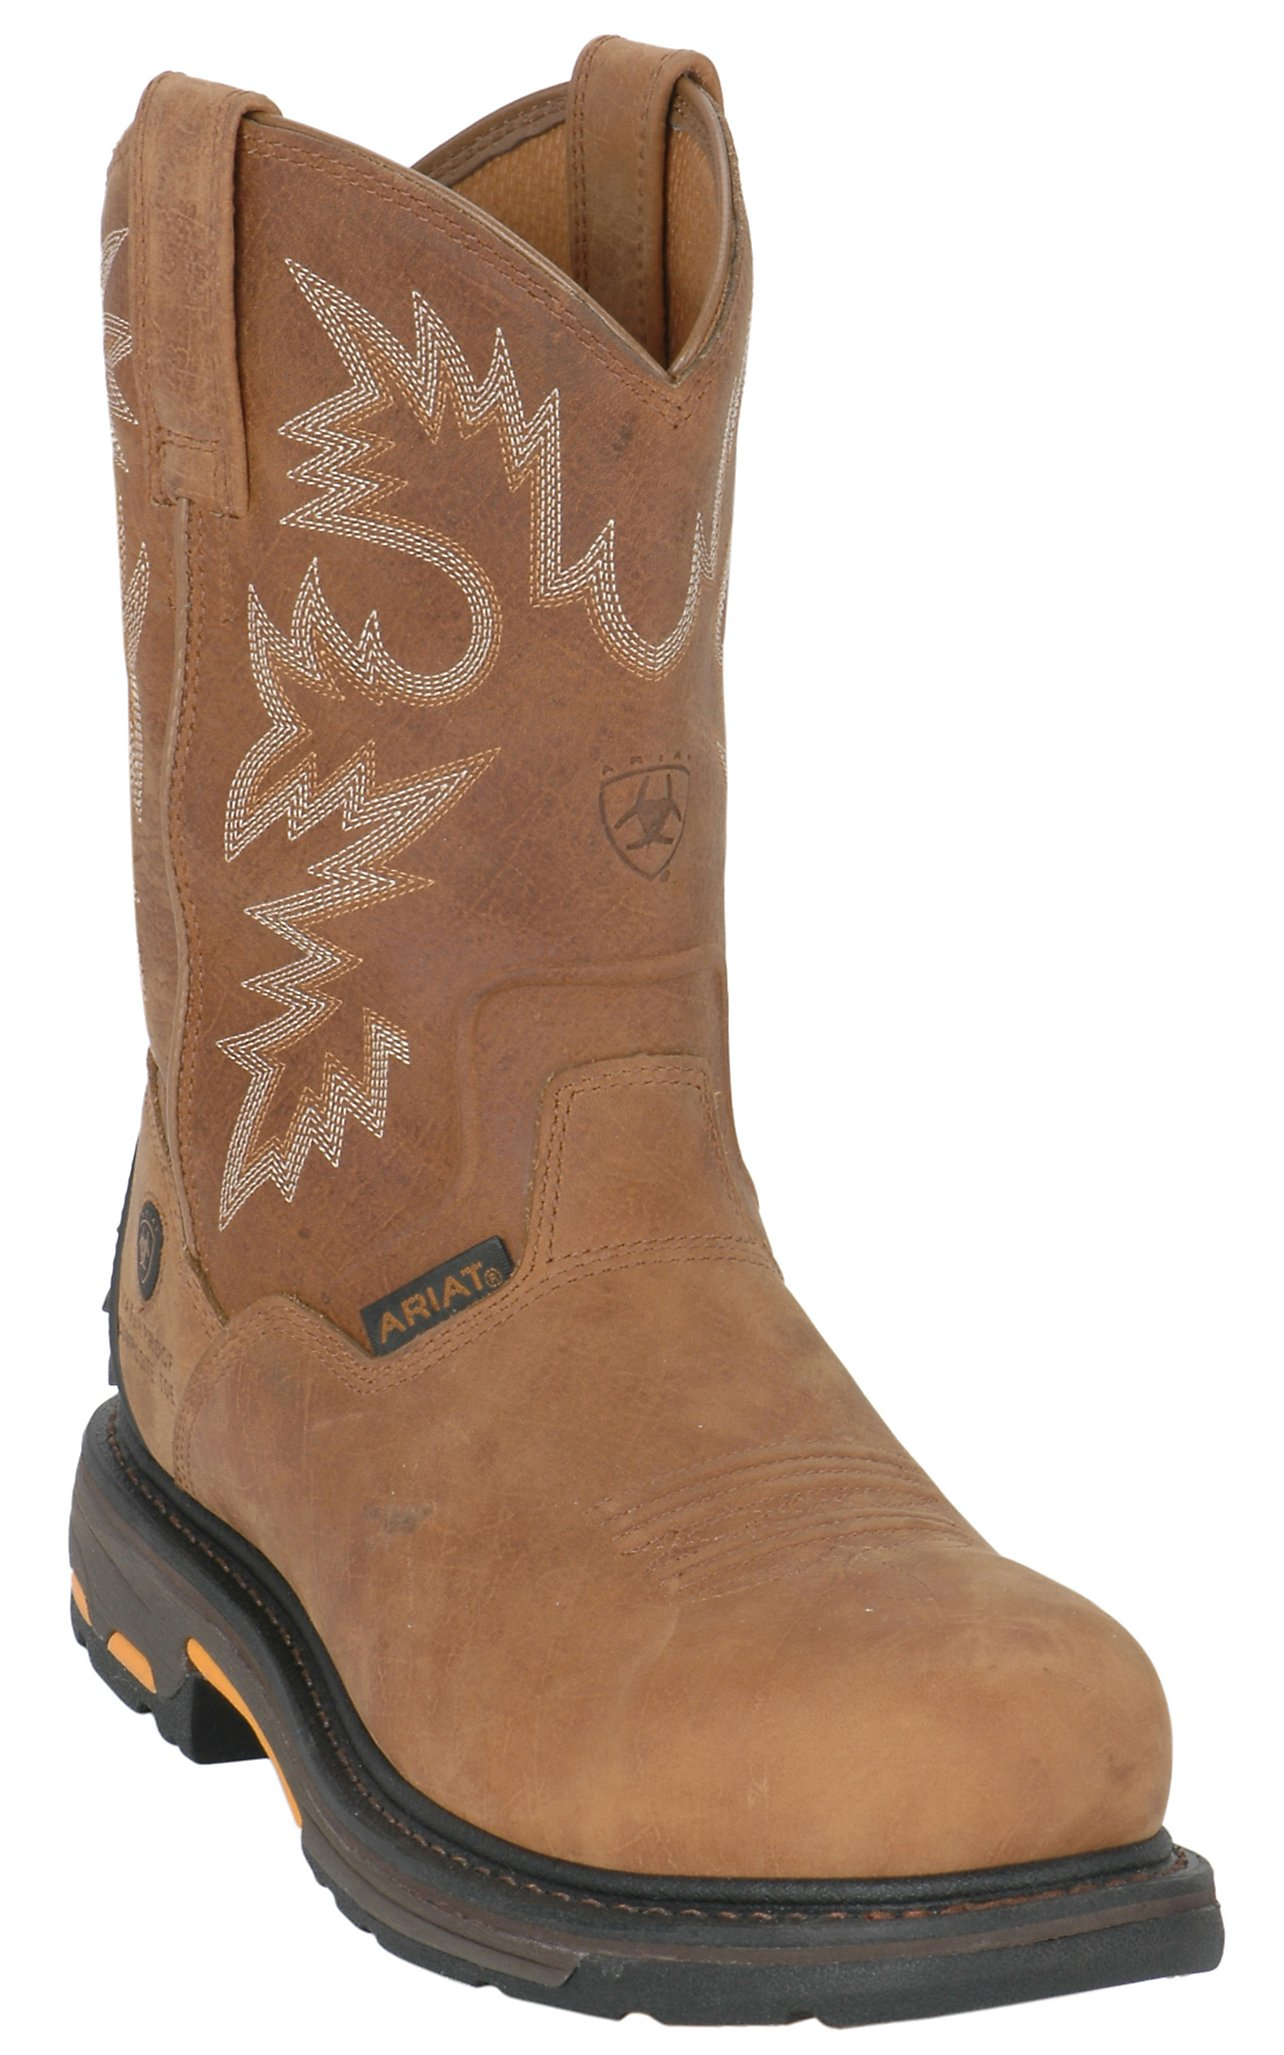 Shop Men's Work Boots | Free Shipping $50  | Cavender's